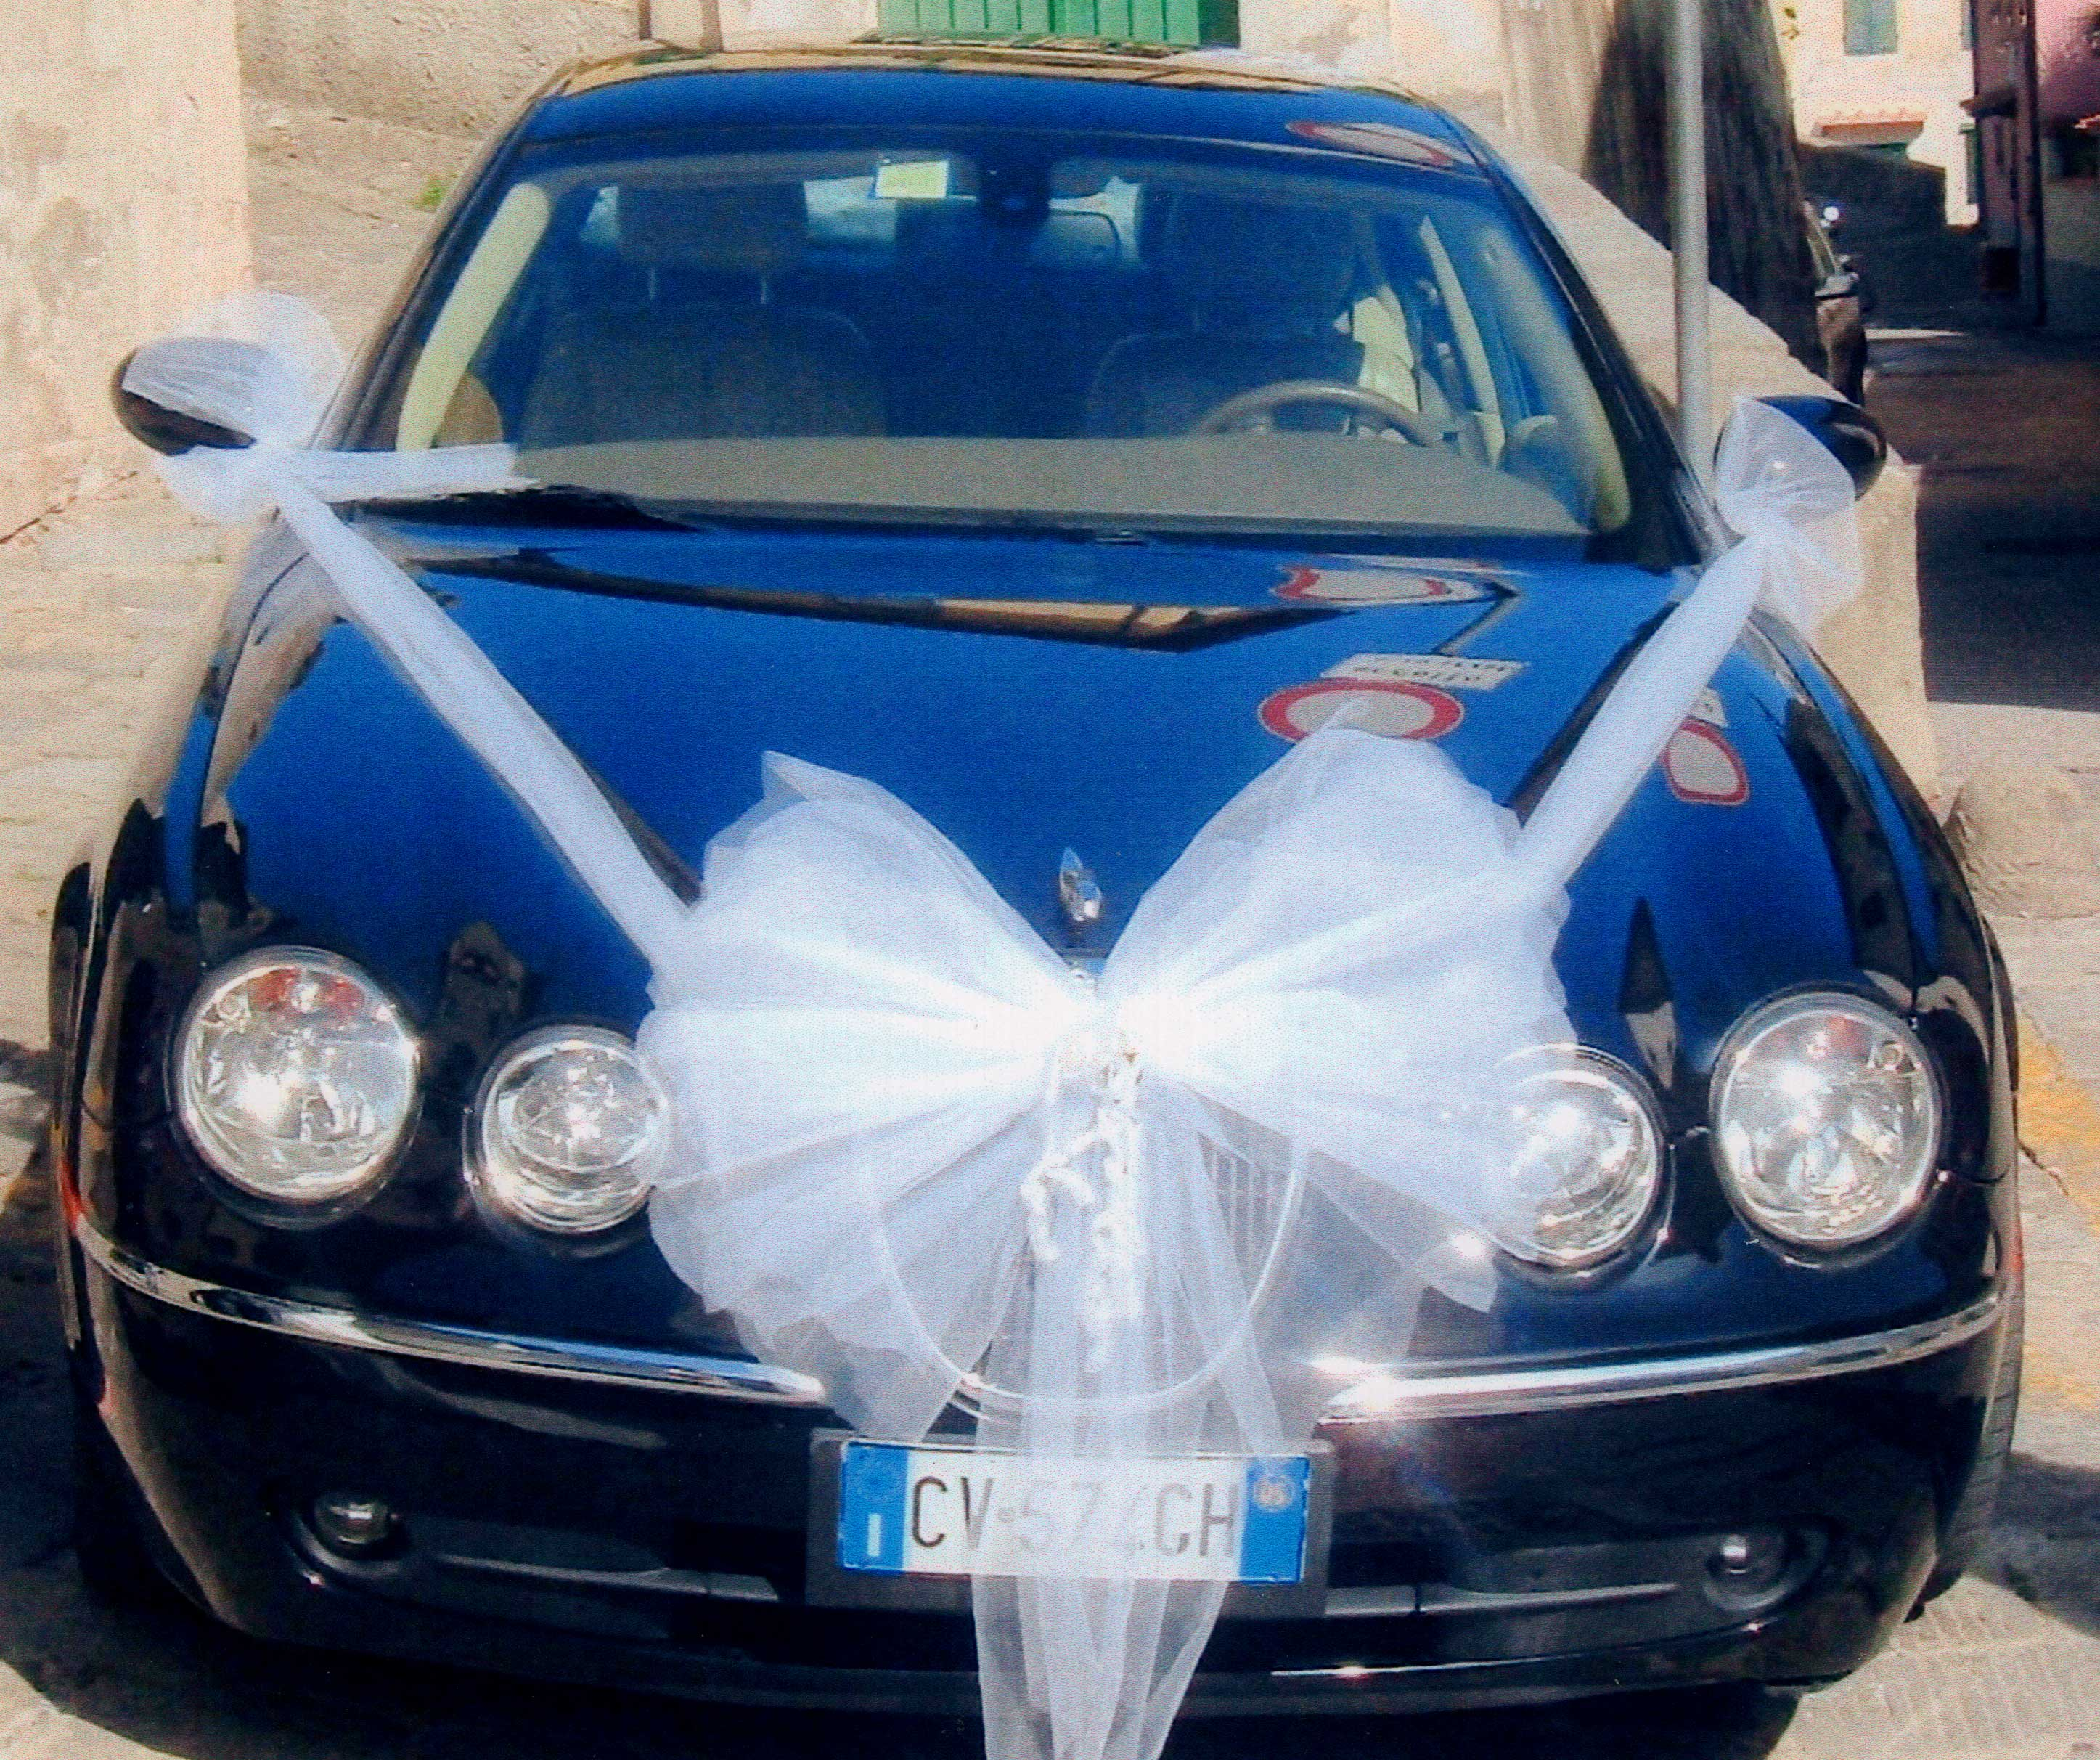 Fiori matrimonio: alternative originali e low cost per l'auto degli sposi